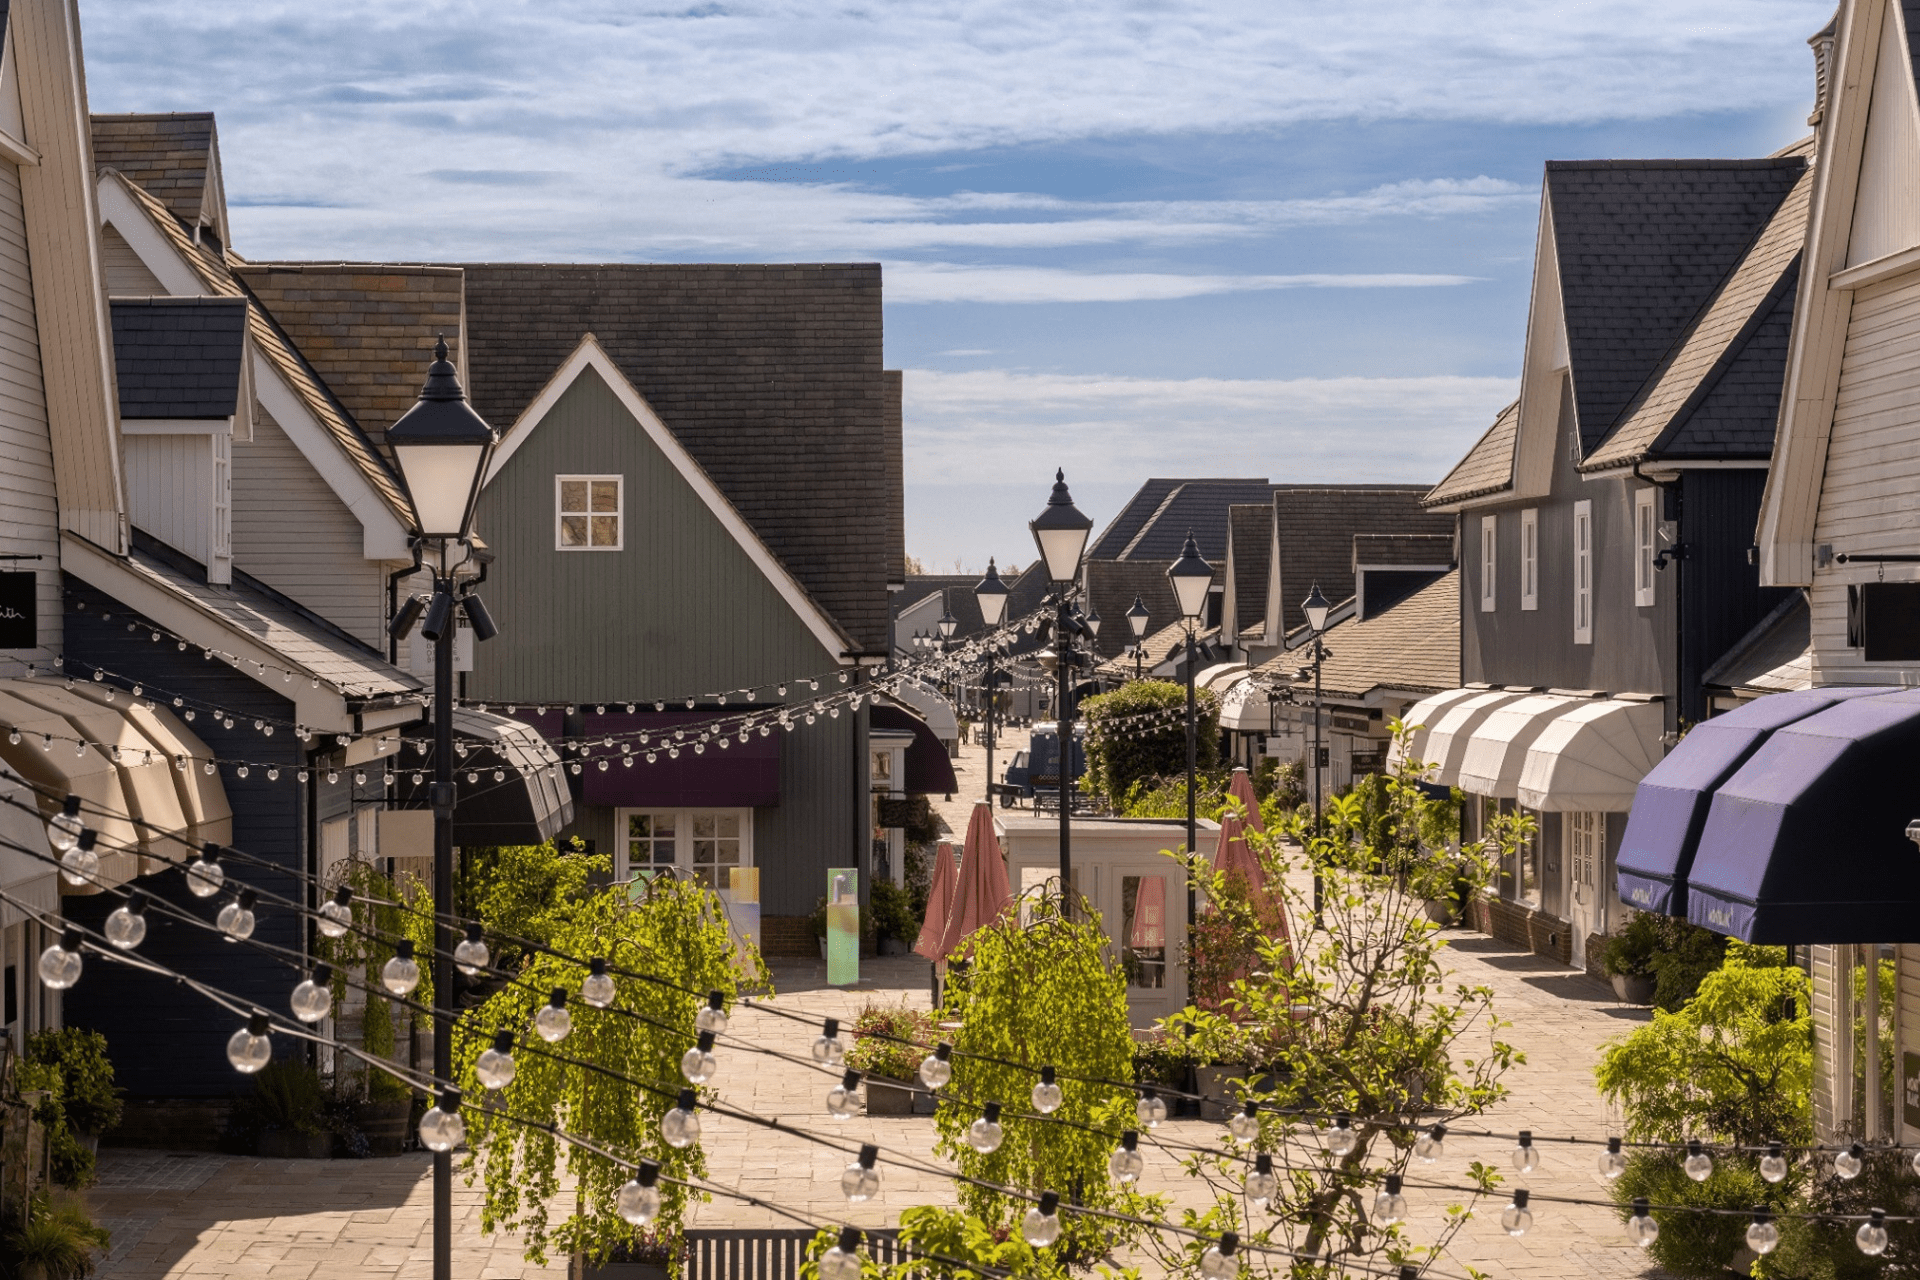 View of Bicester Village